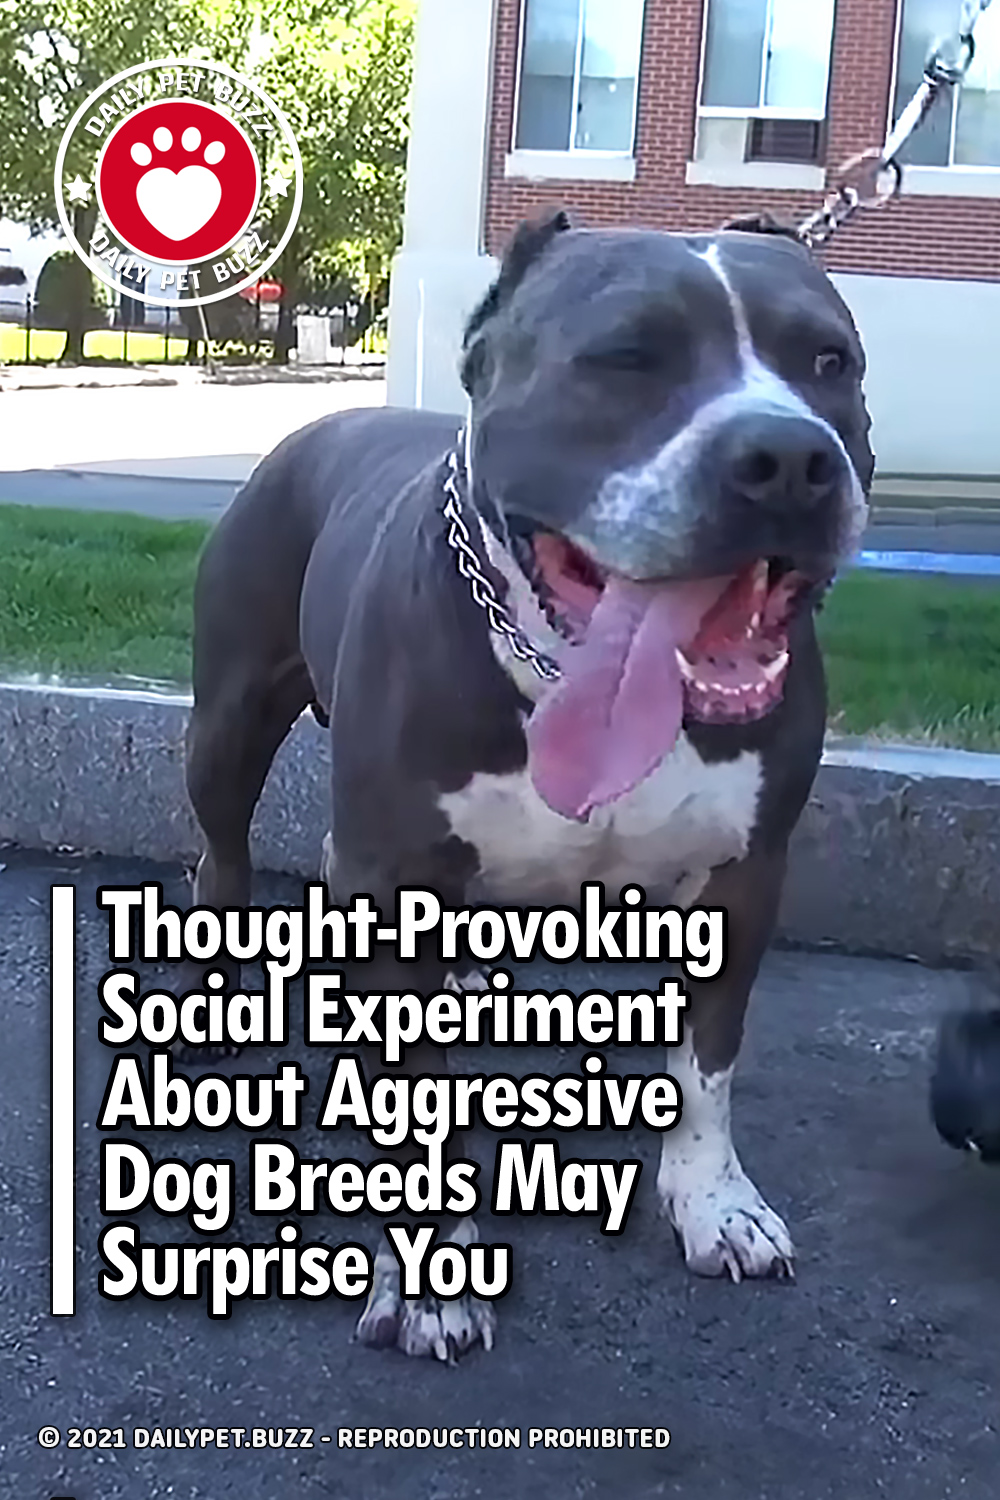 Thought-Provoking Social Experiment About Aggressive Dog Breeds May Surprise You